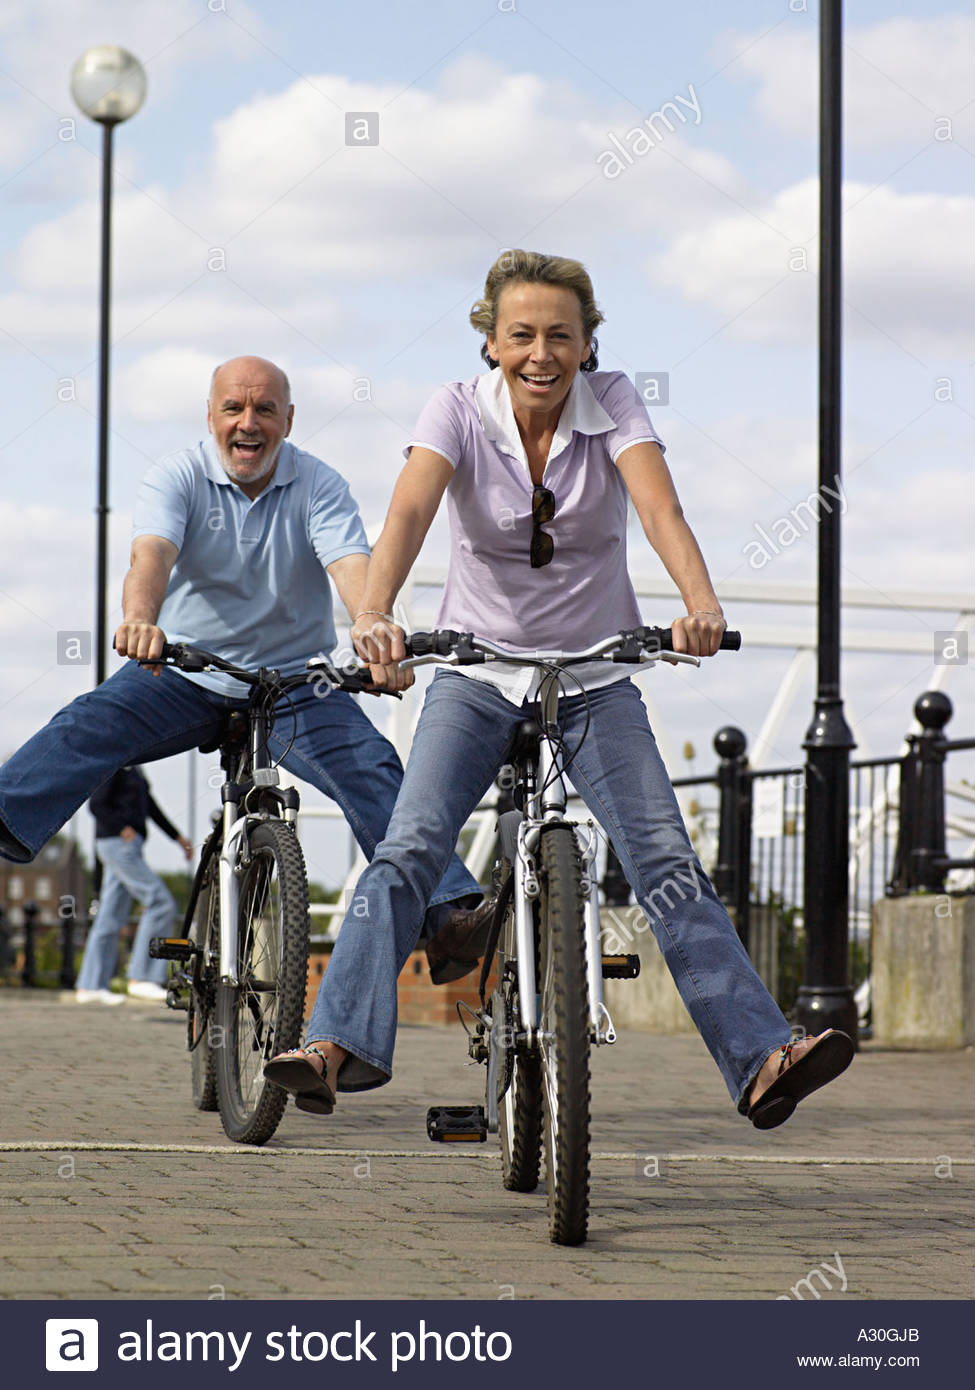 mature couple riding bicycles stock photo, royalty free image